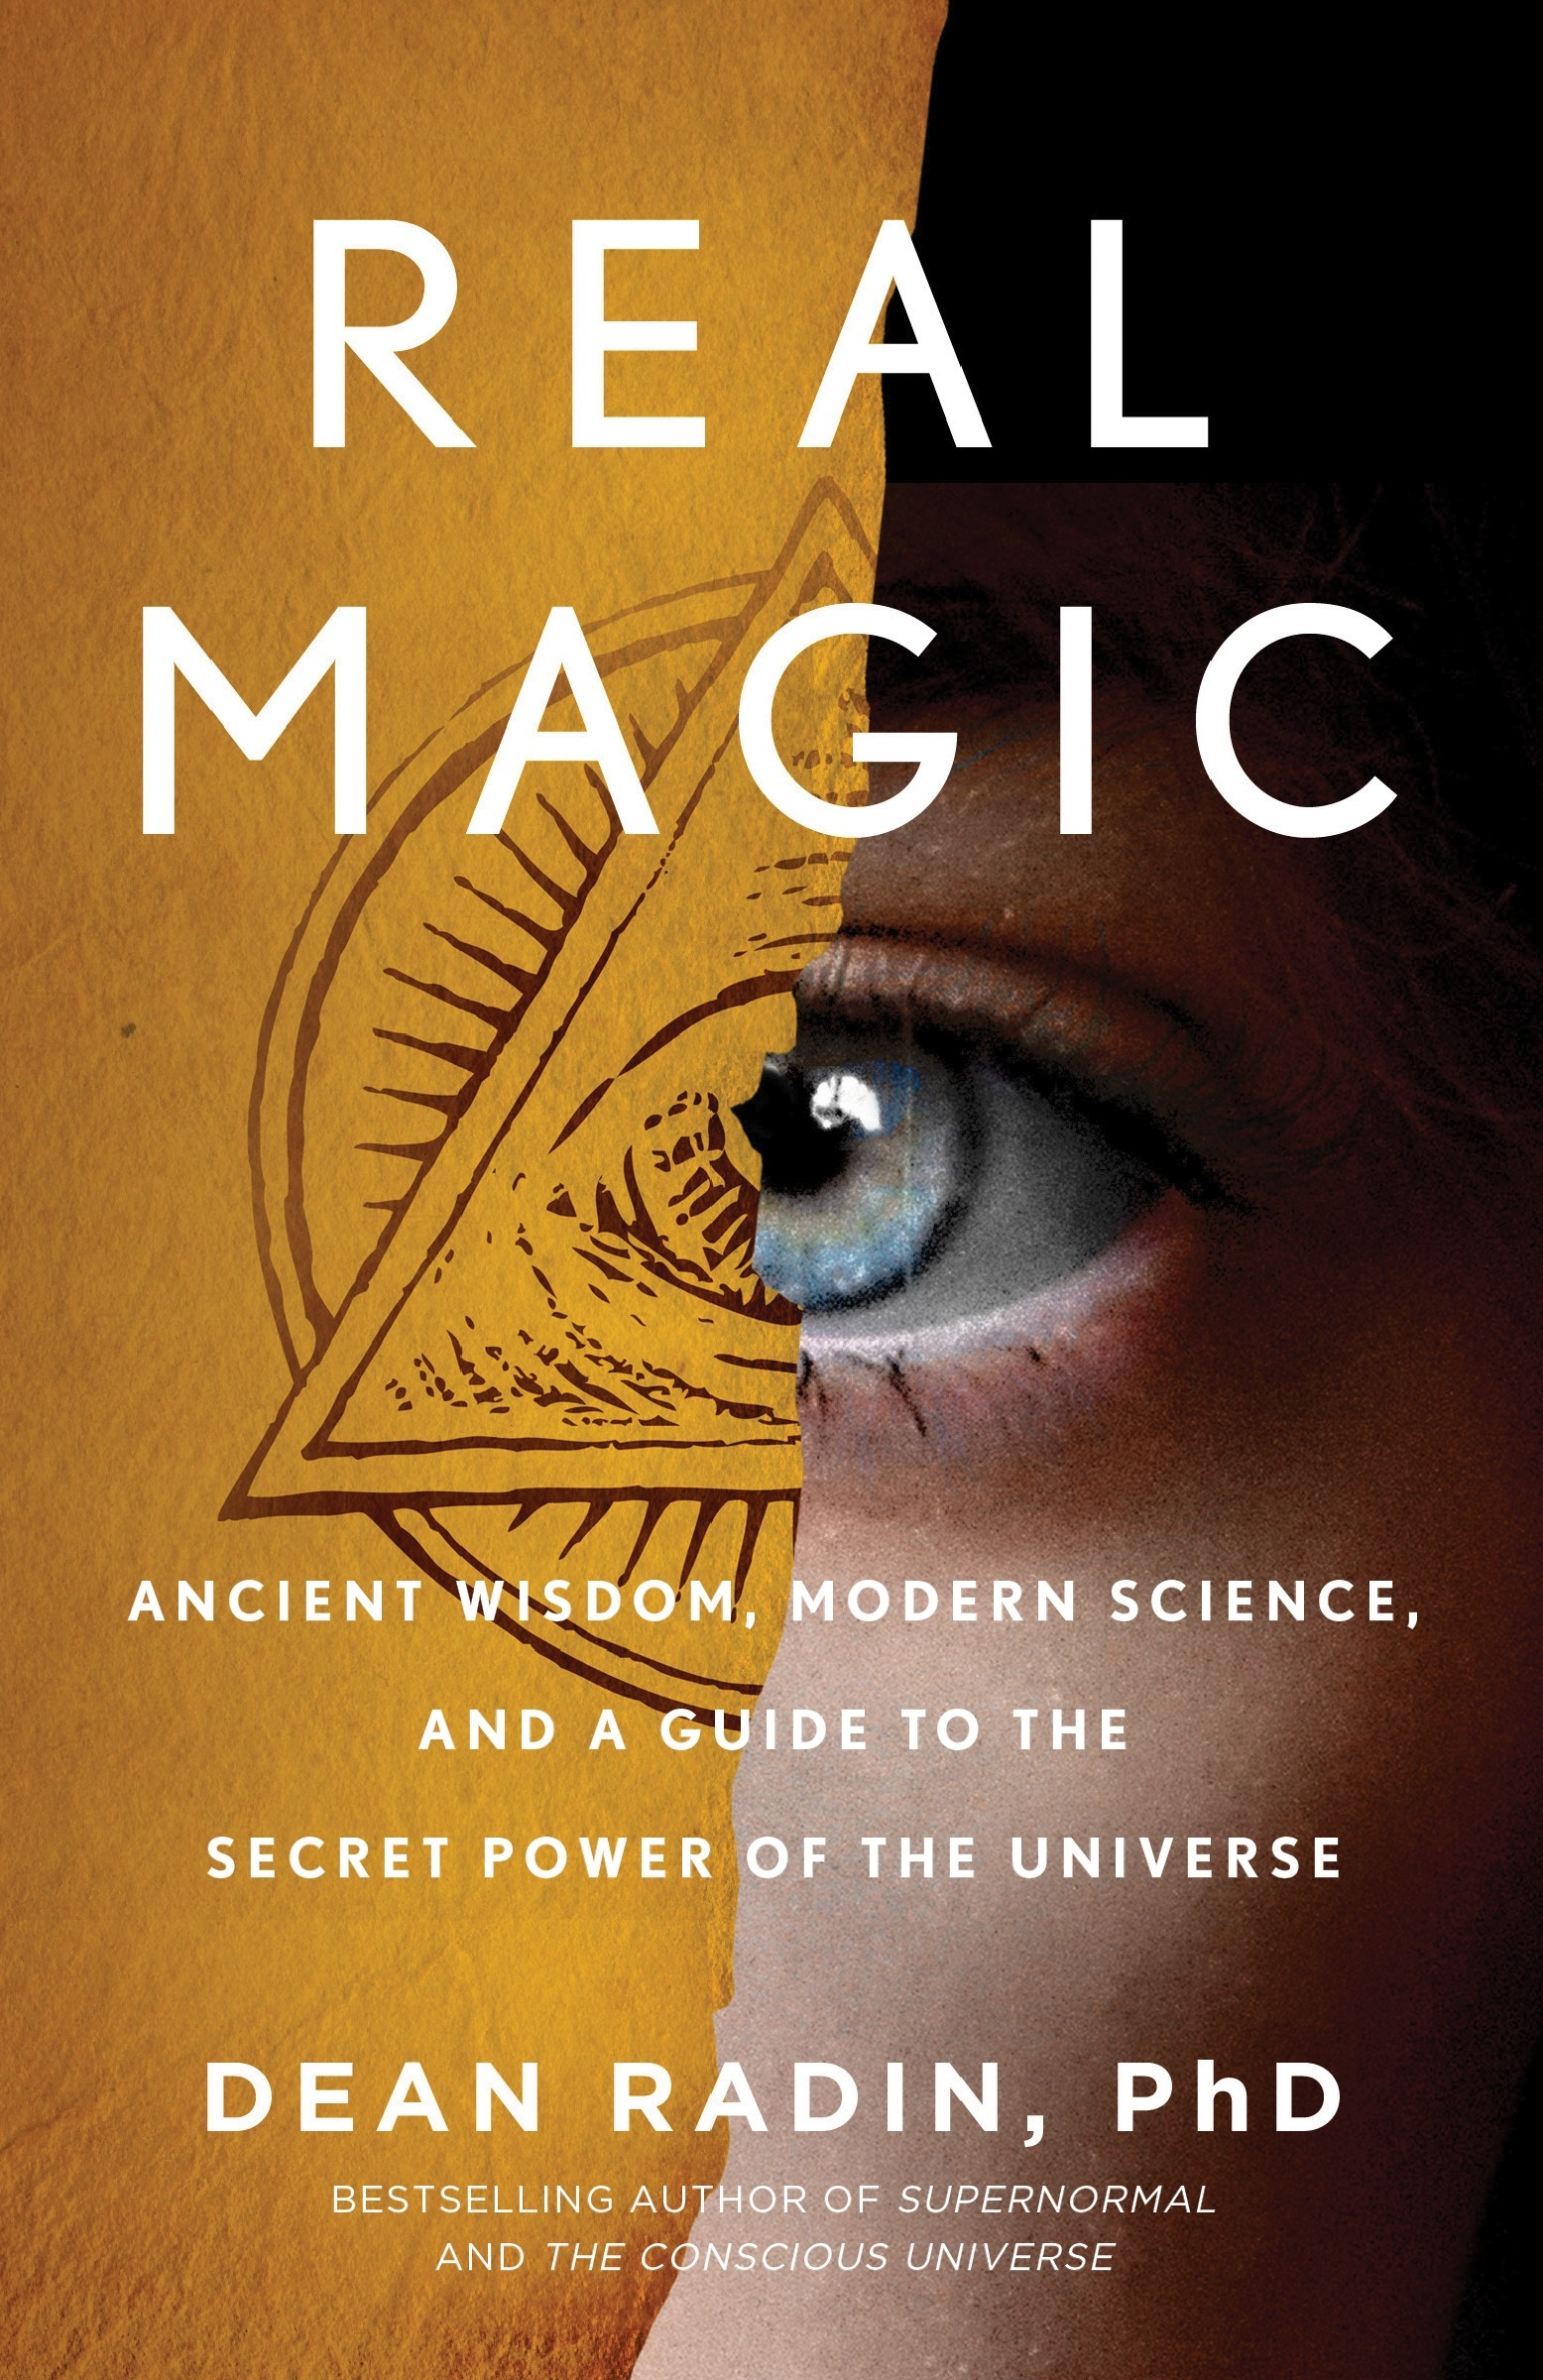 Real Magic: Ancient Wisdom, Modern Science, and a Guide to the Secret Power of the Universe by Dean Radin, ISBN: 9781524758820